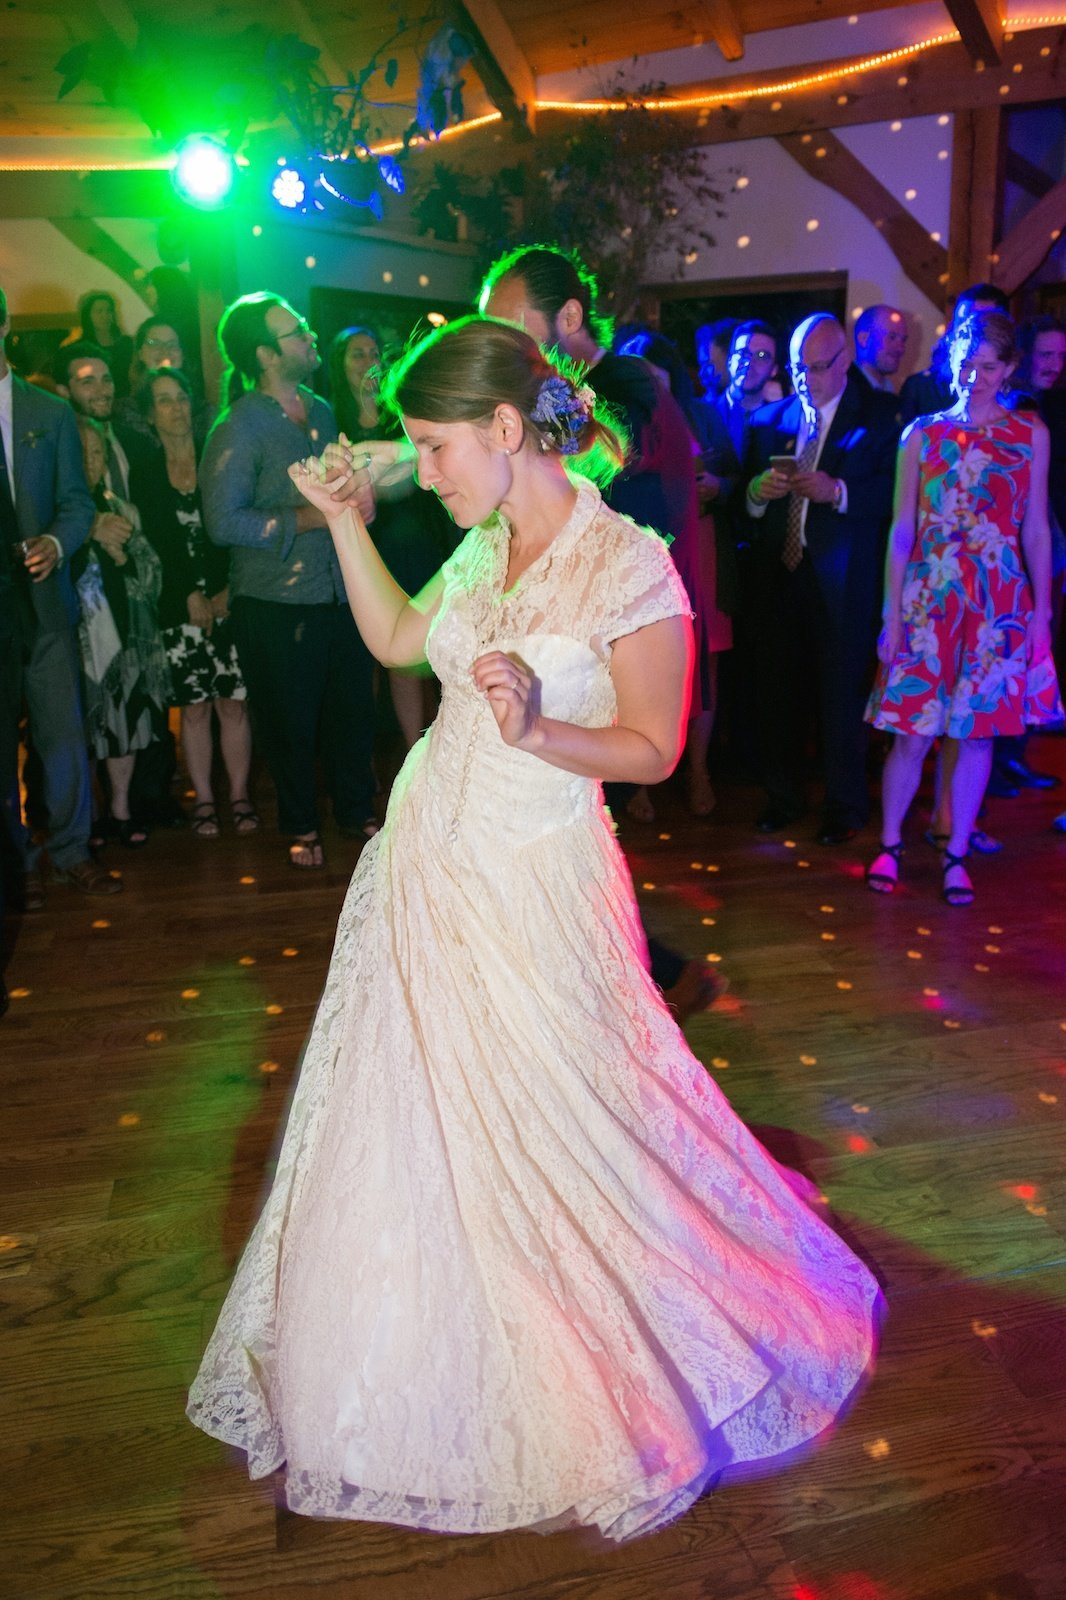 epic dance party photo at Vermont private residence wedding reception